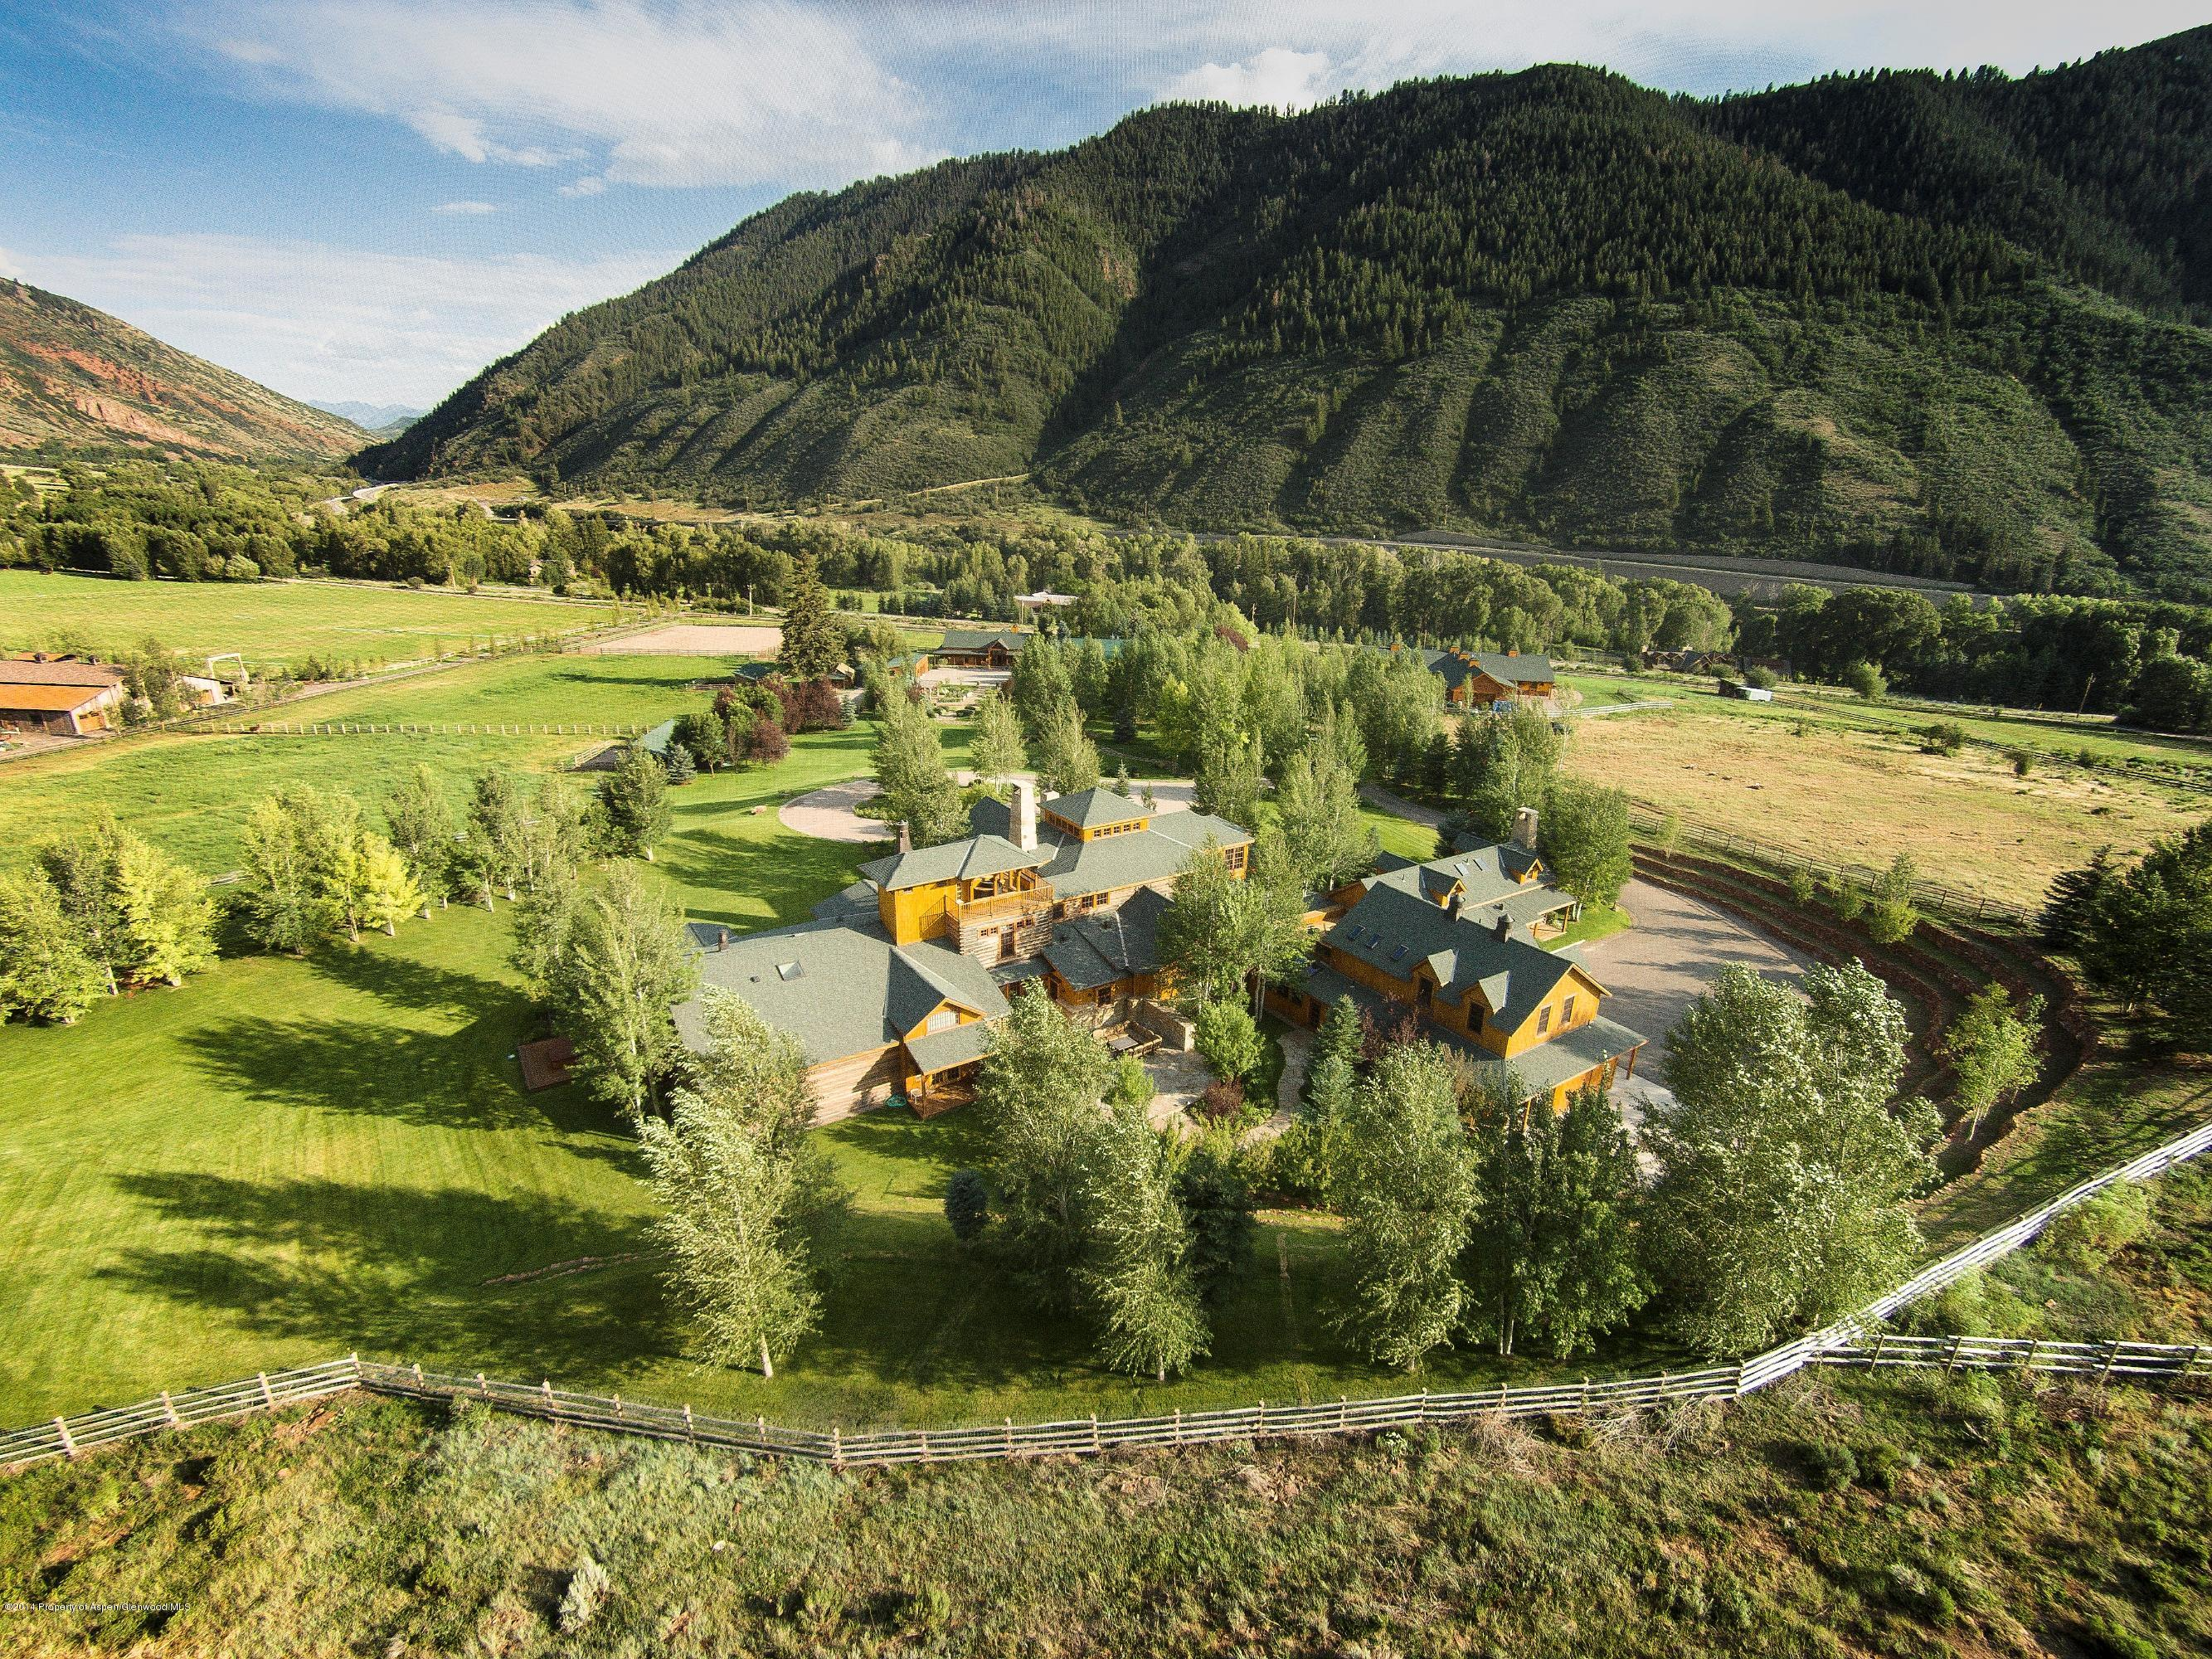 MLS# 135595 - 45 - 50 E River Ranch Road, Snowmass, CO 81654